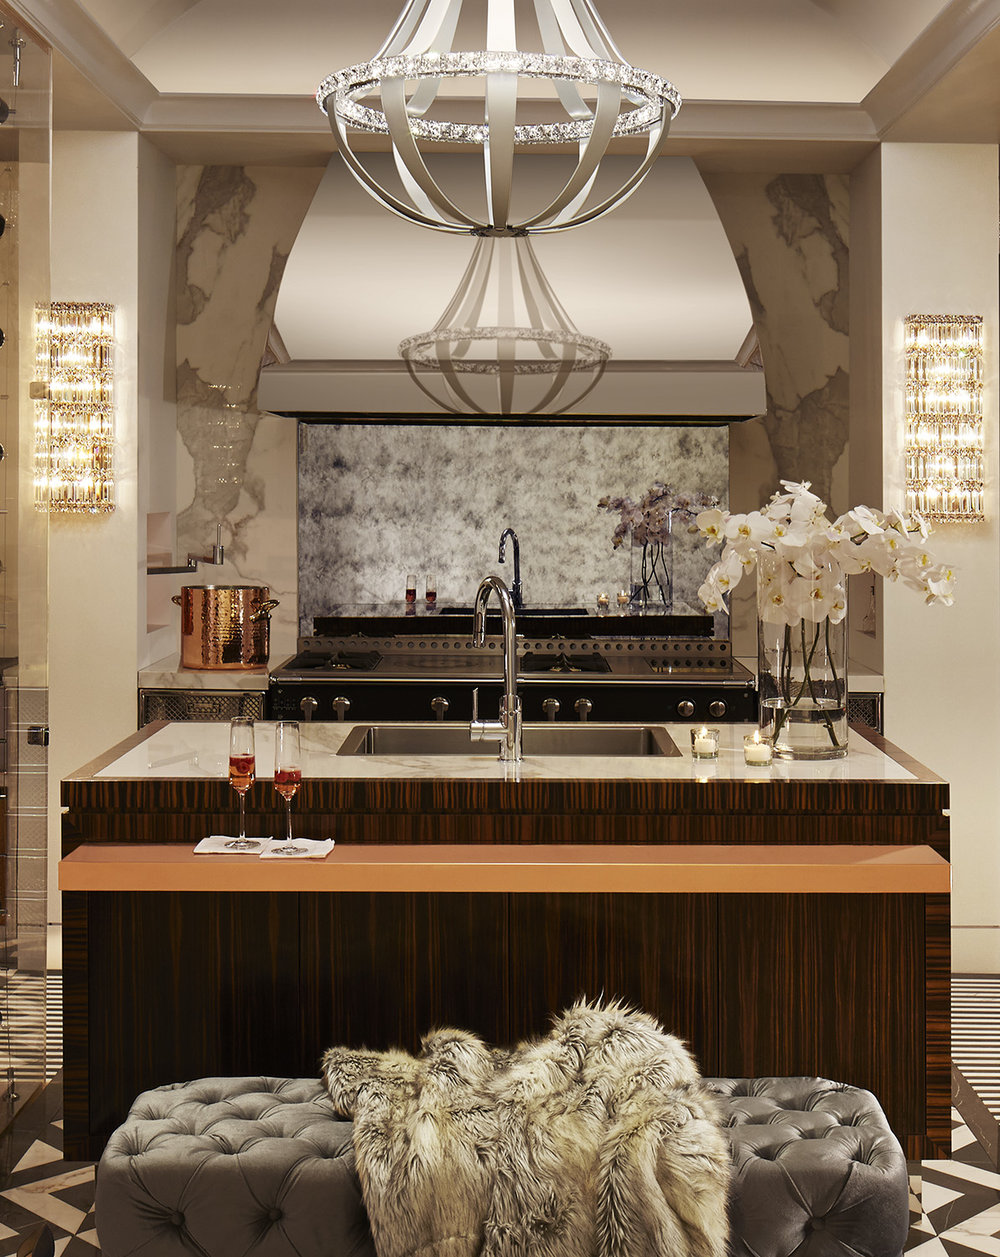 Kitchen Island Steve Marshall - Design Richard Anuszkiewicz for DXV - Photography Earl Kendall - Styling Jim Goulet